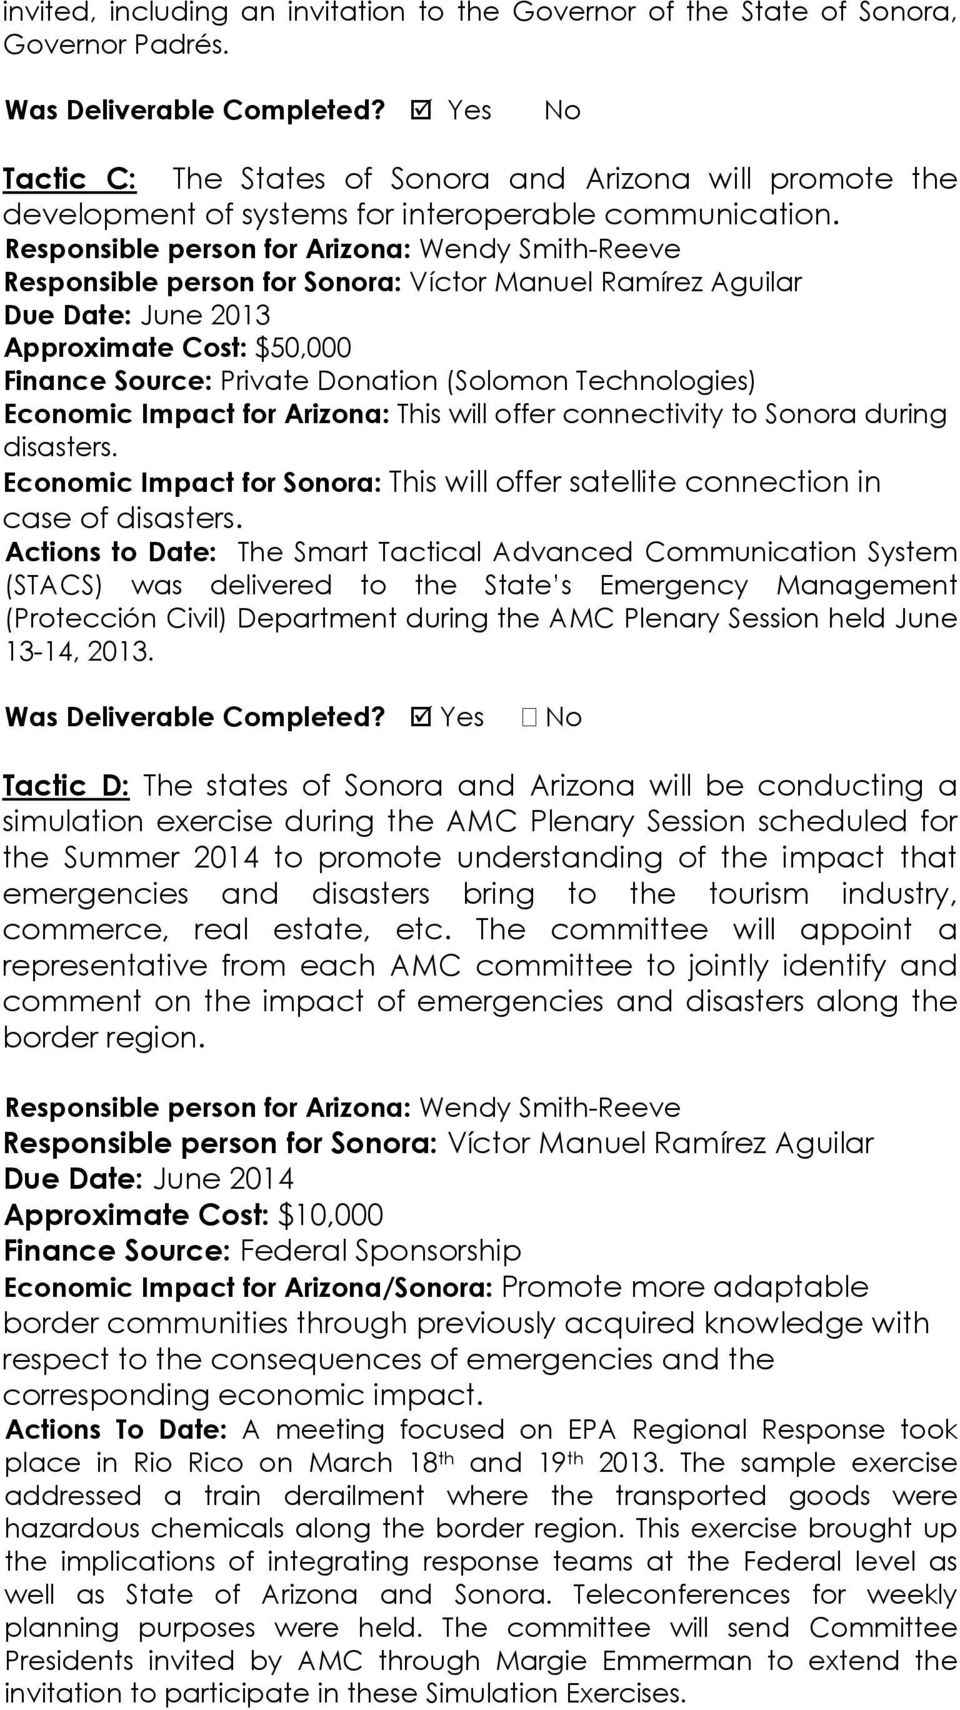 Responsible person for Arizona: Wendy Smith-Reeve Responsible person for Sonora: Víctor Manuel Ramírez Aguilar Due Date: June 2013 Approximate Cost: $50,000 Finance Source: Private Donation (Solomon